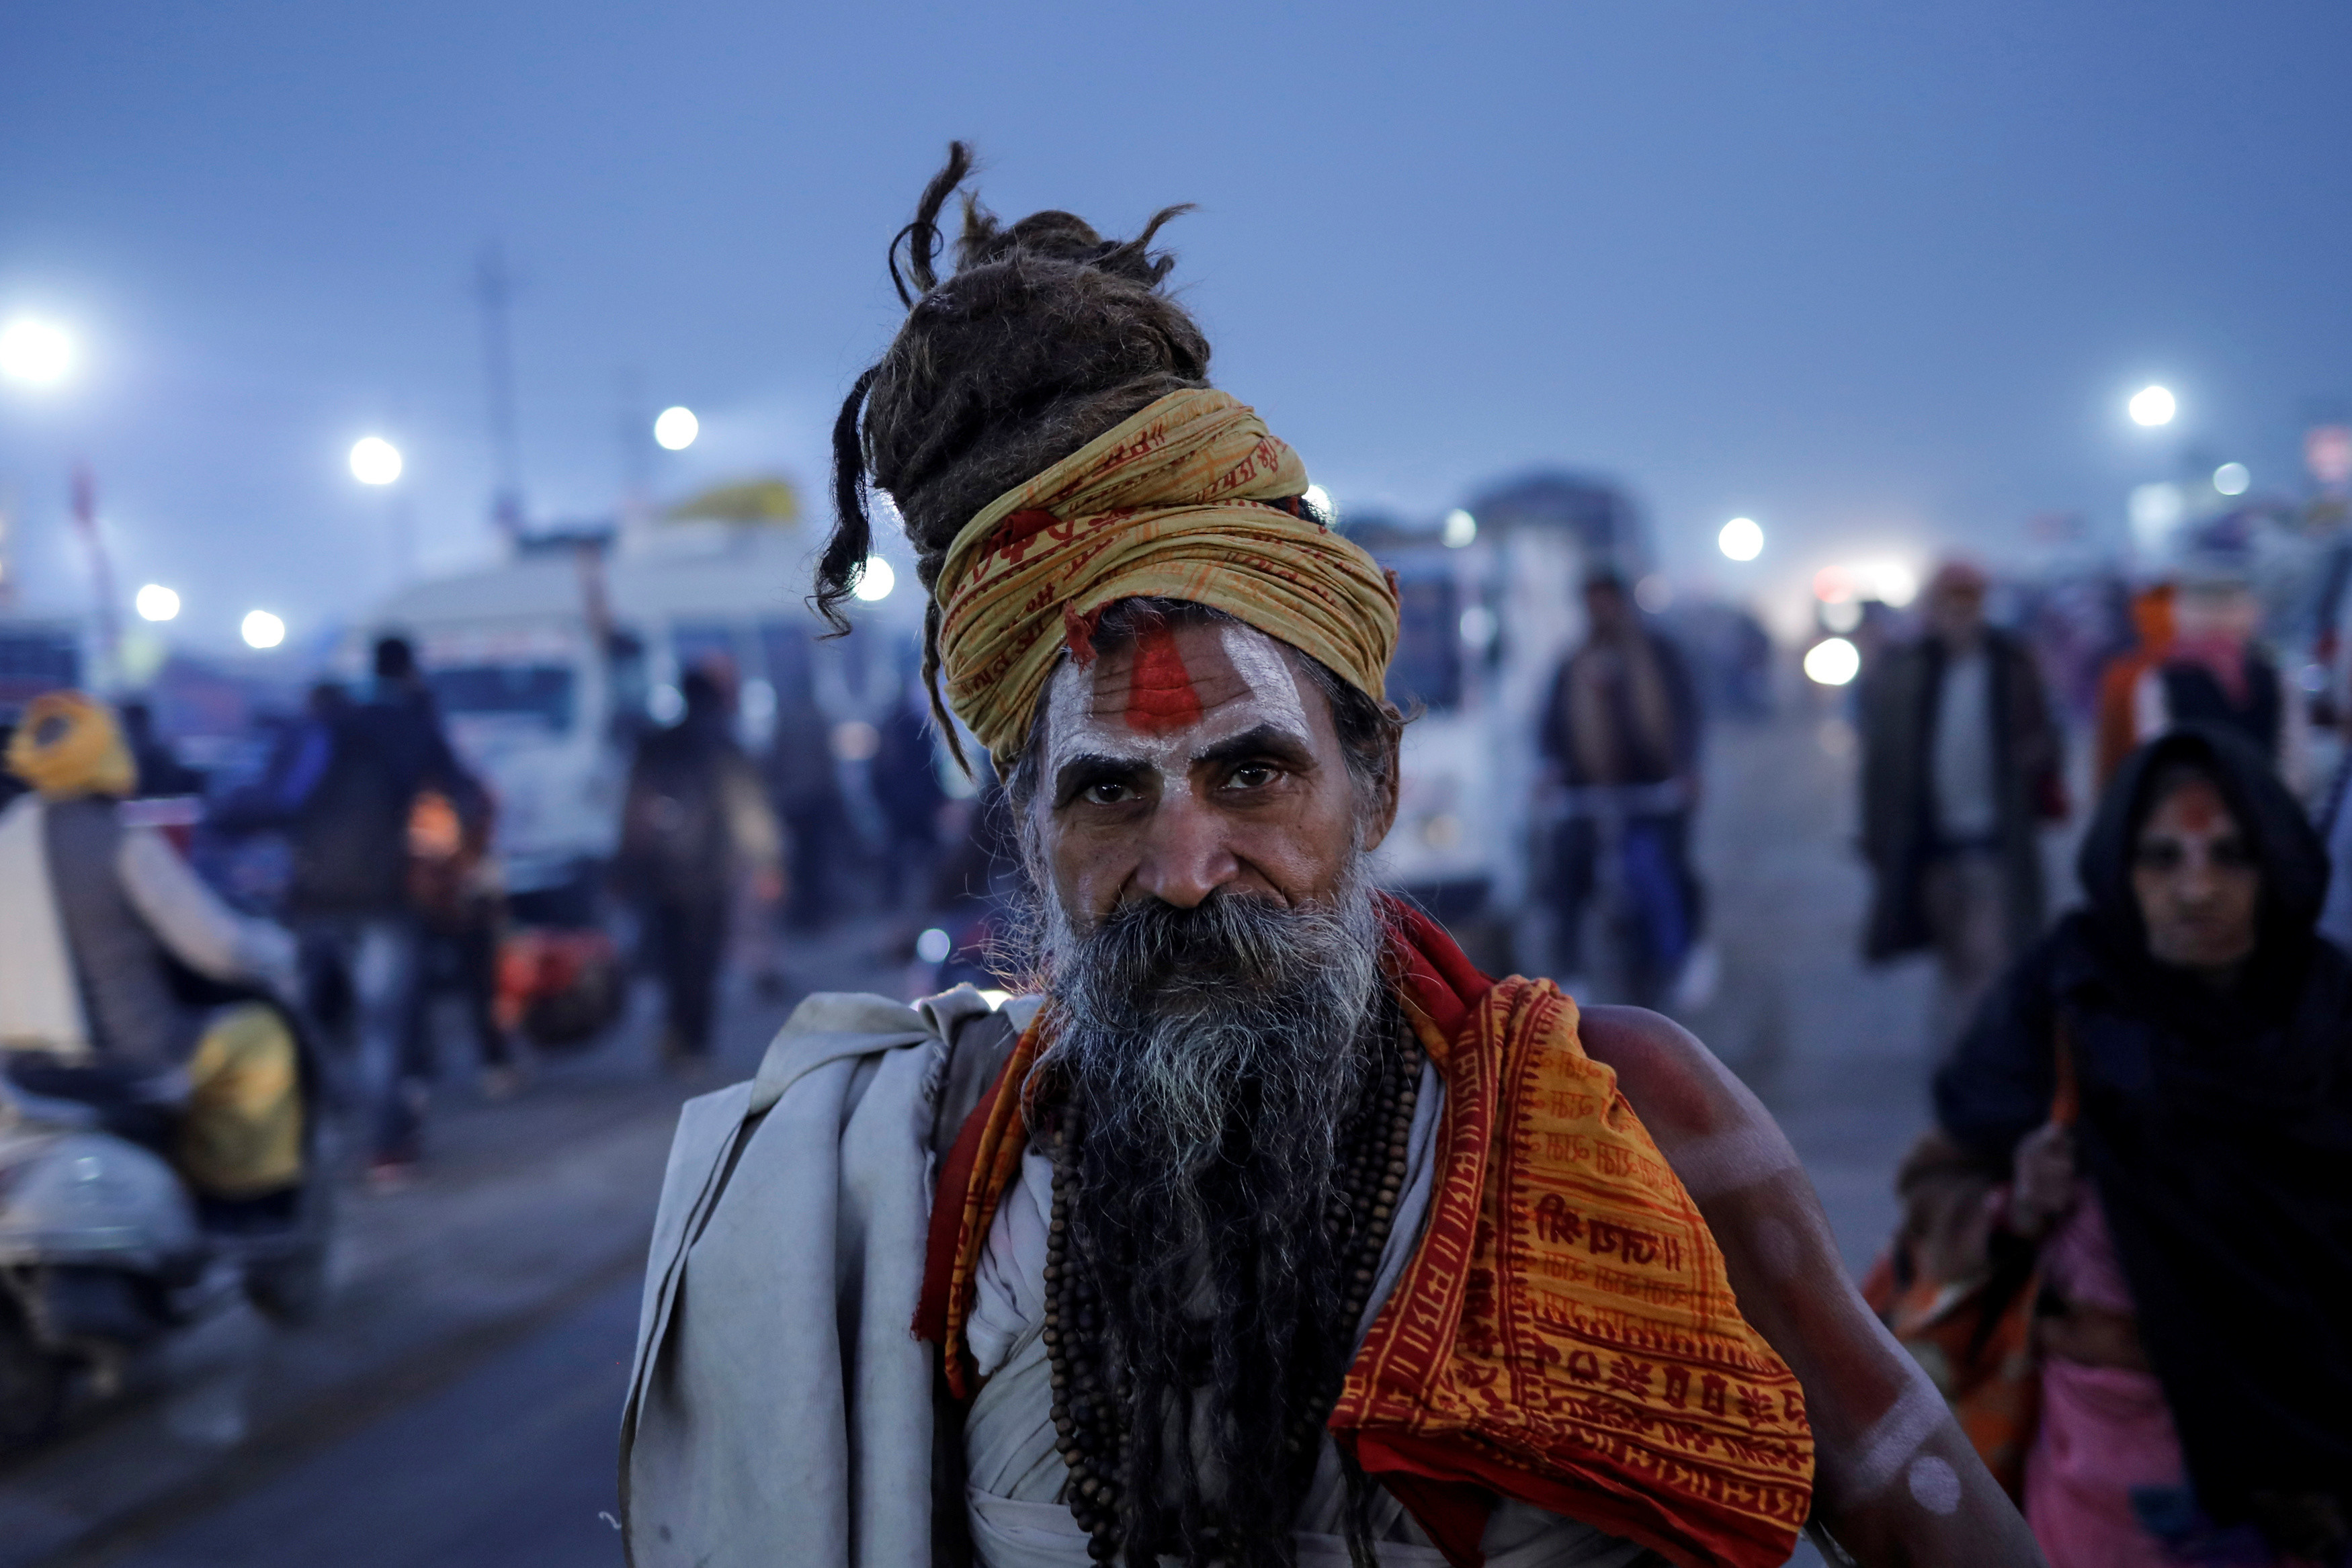 A Sadhu or a Hindu holy man walks on a road at the site of the